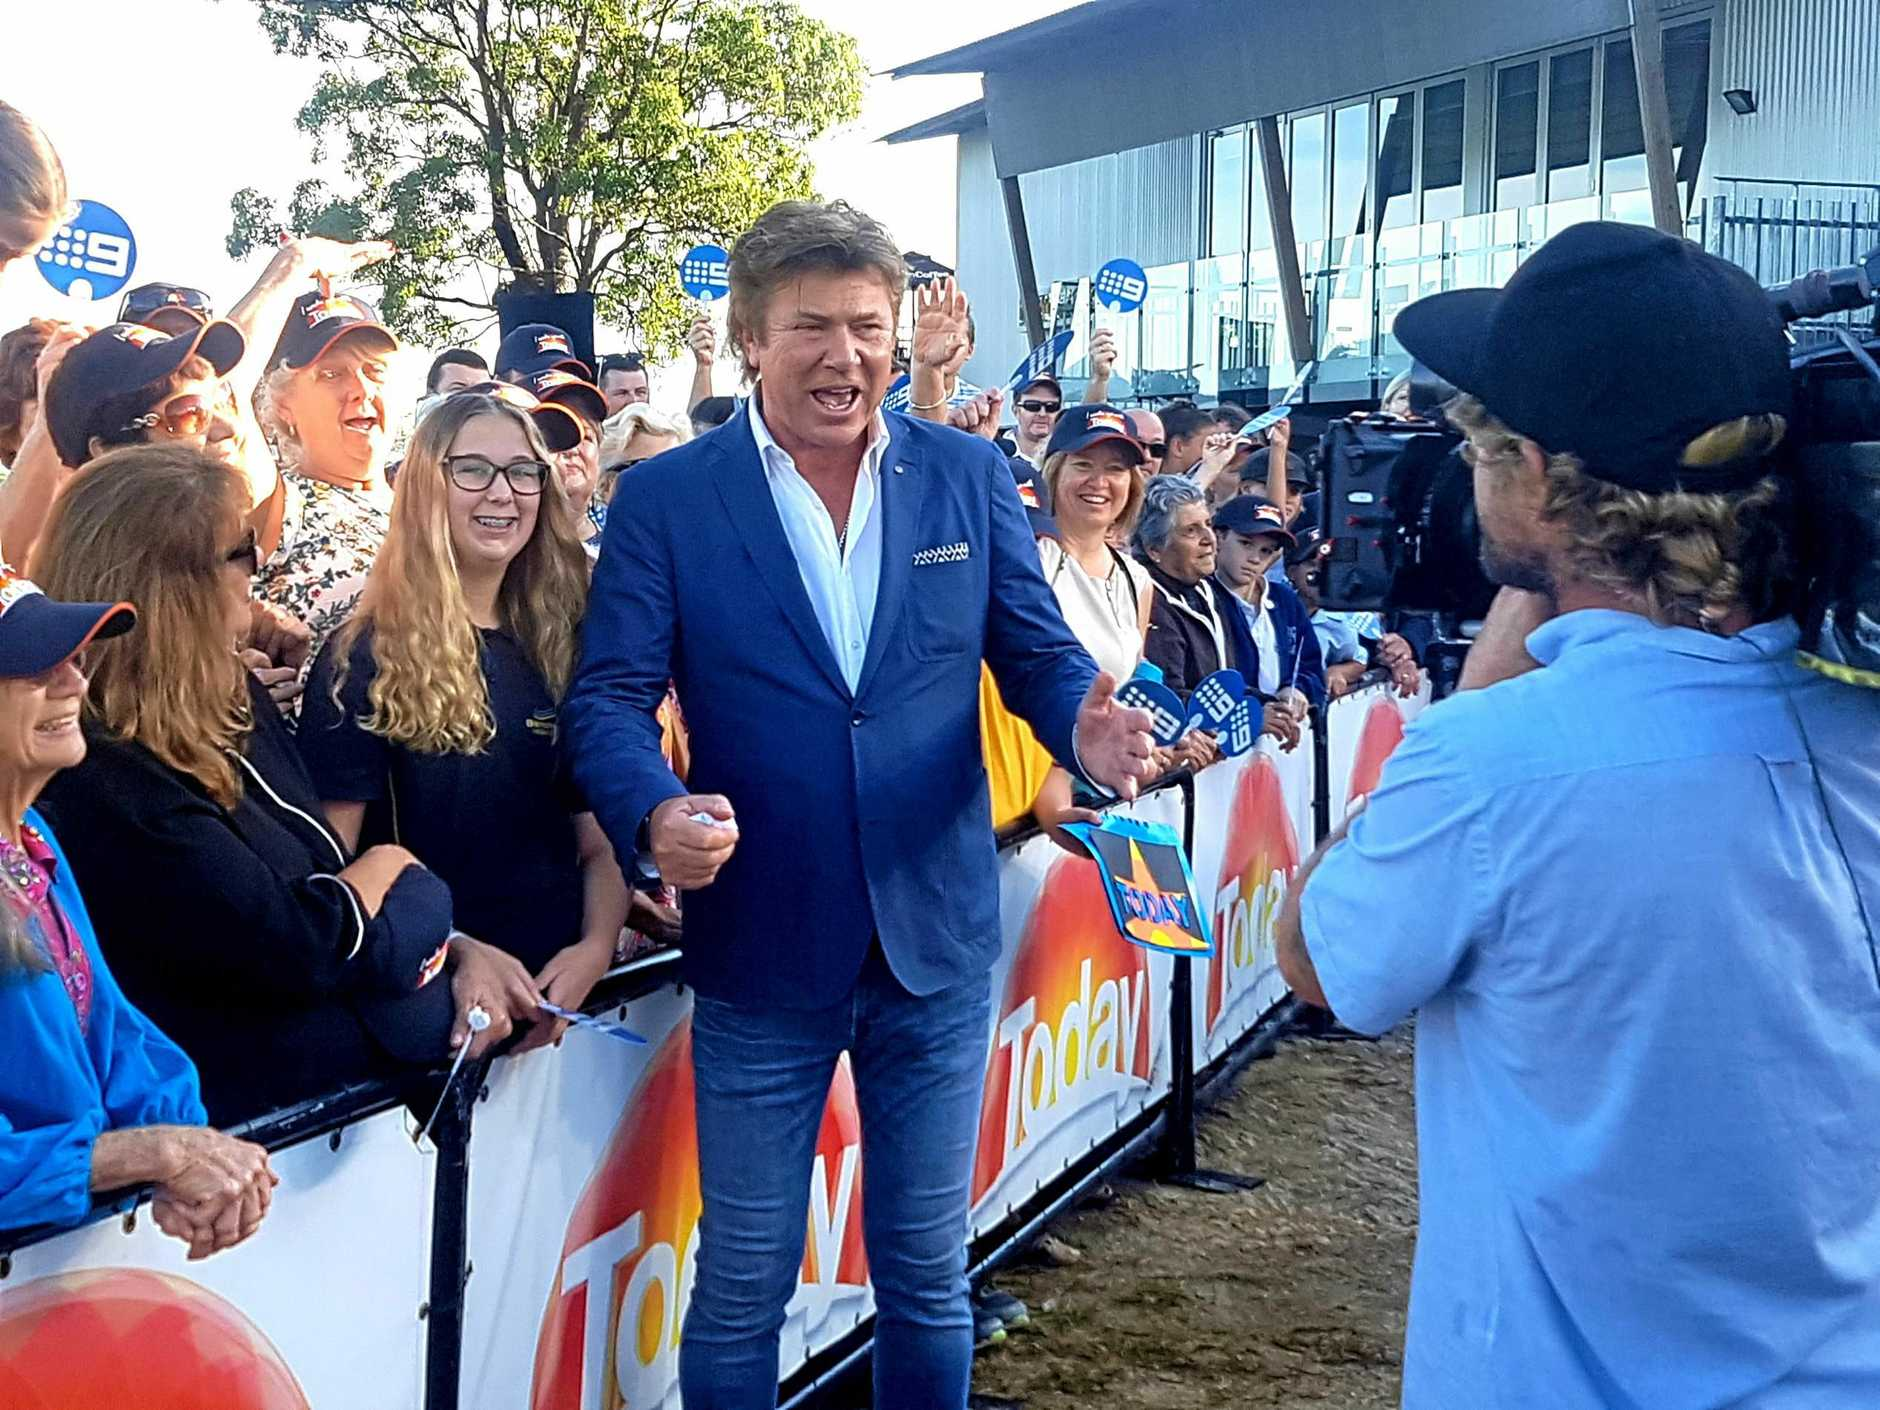 Entertainment guru Richard Wilkins crosses live from Tweed Regional Gallery as fans watch on during the TODAY Show broadcast on Friday.